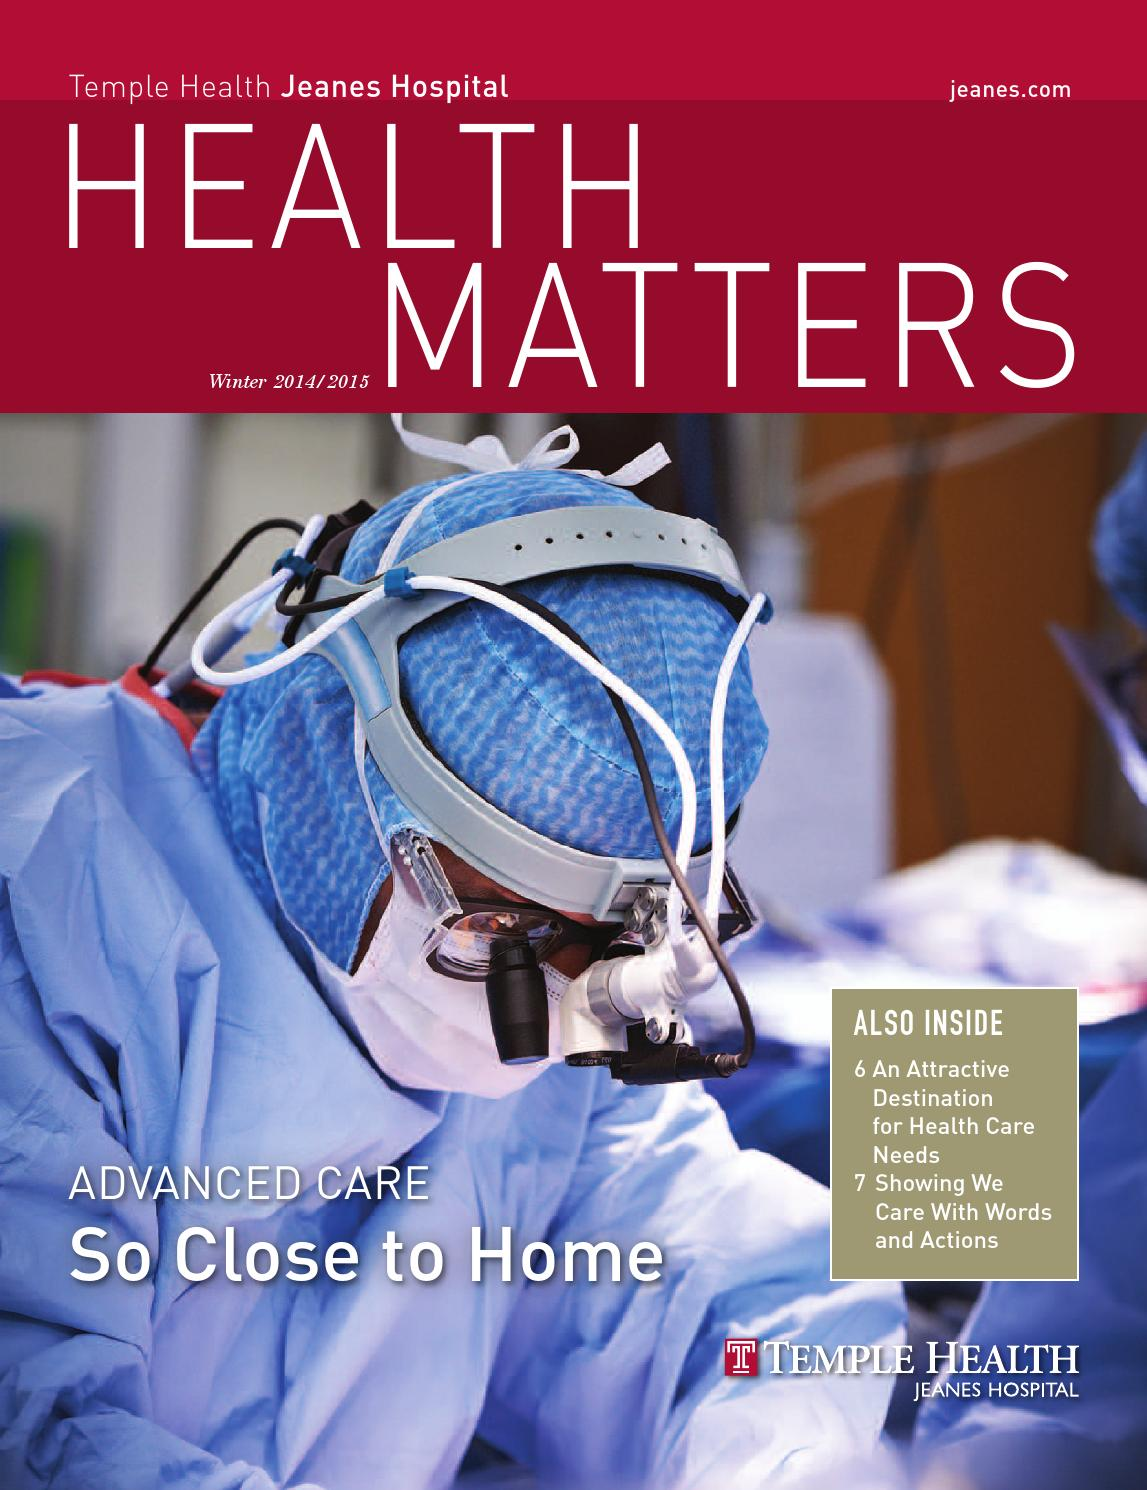 2016 kenmore mercy hospital nursing annual report by catholic health matters jeanes hospital winter 20142015 issue fandeluxe Choice Image